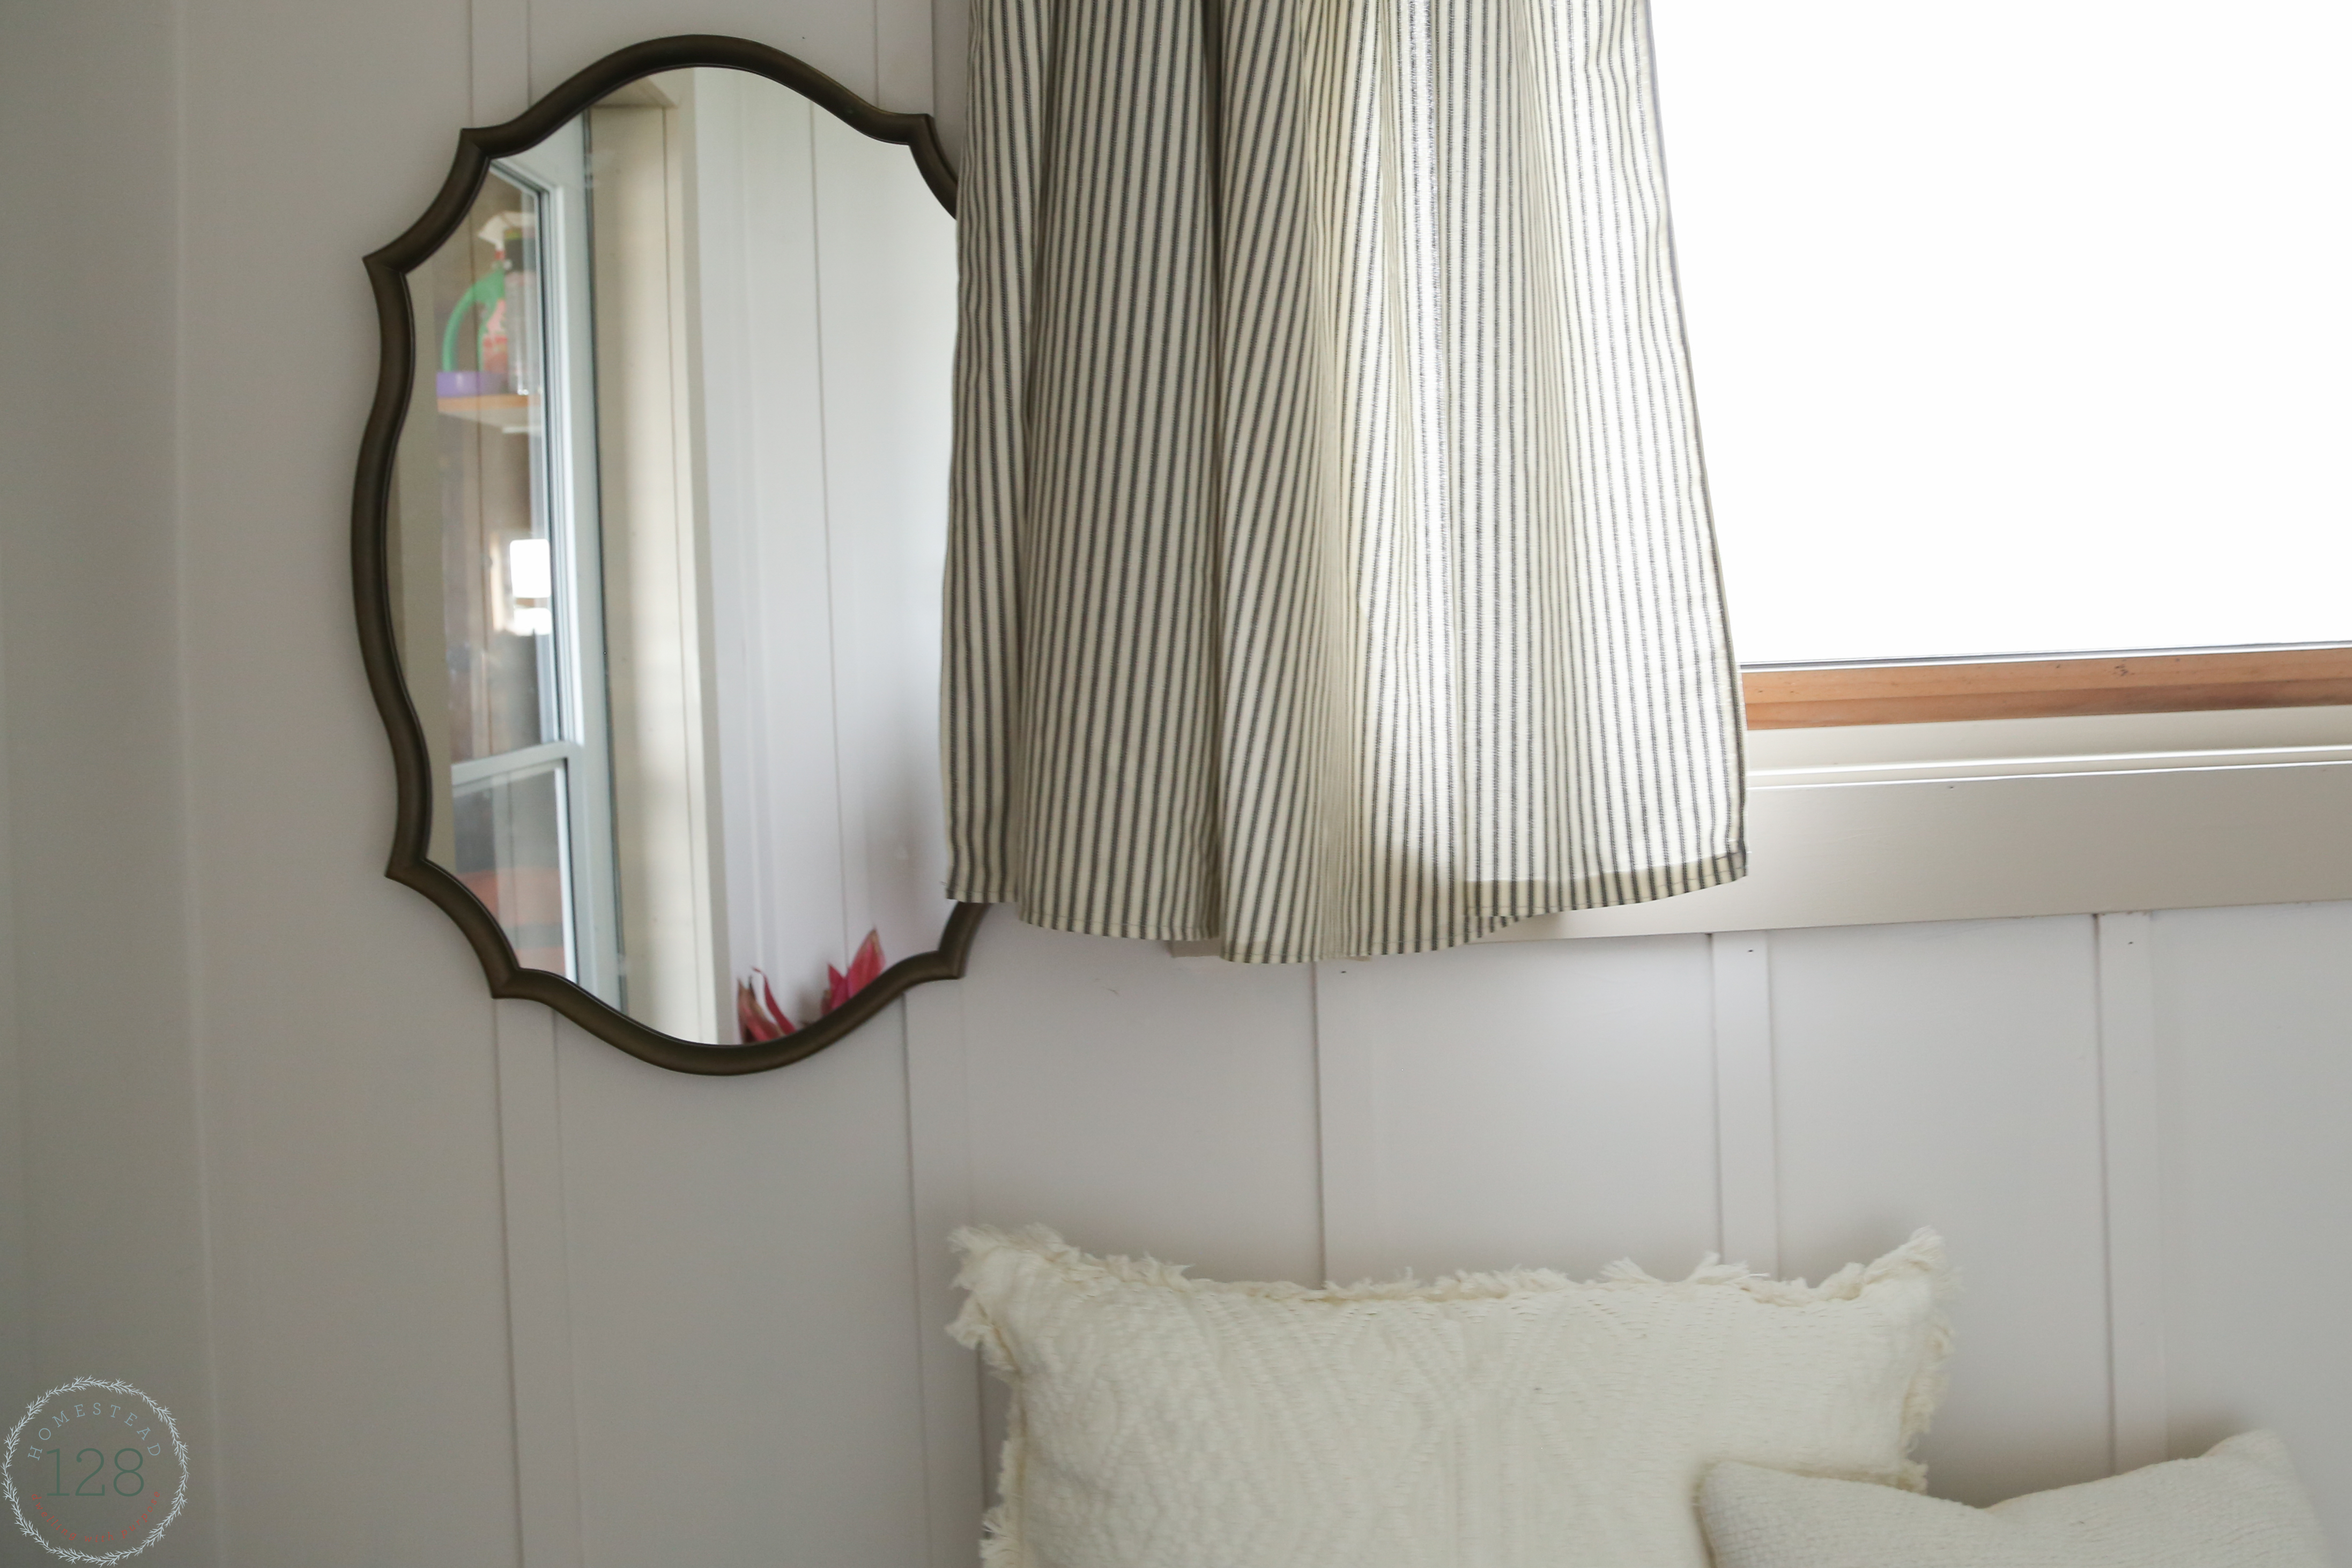 Vintage inspired gold trimmed mirror with black ticking striped curtains, greige trim and white batten walls.